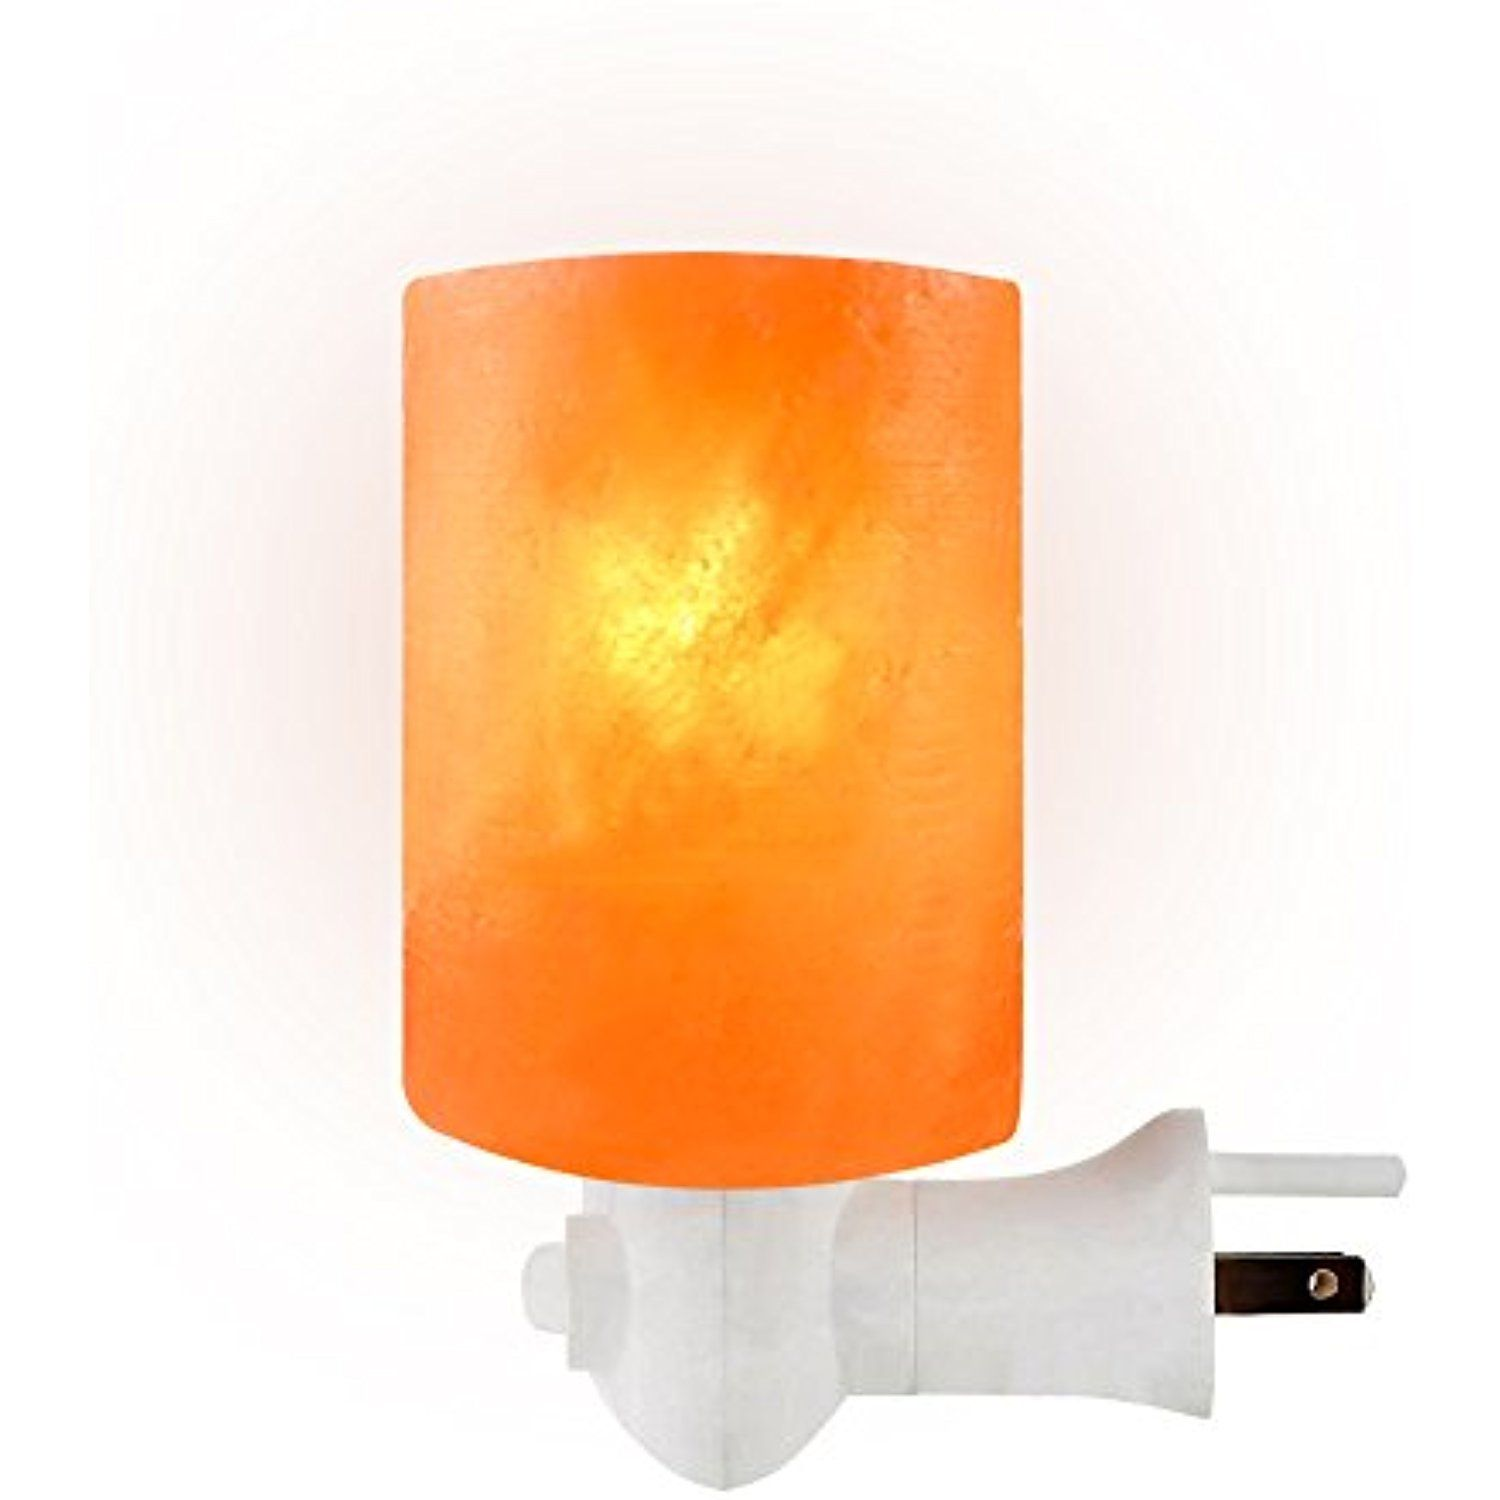 Salt Gems Himalayan Salt Lamp Night Light Wall Light Hand Carved Crystal Salt Rock Wall Plug Bedroom Night B Lighting Ceiling Fans Night Light Wall Lights